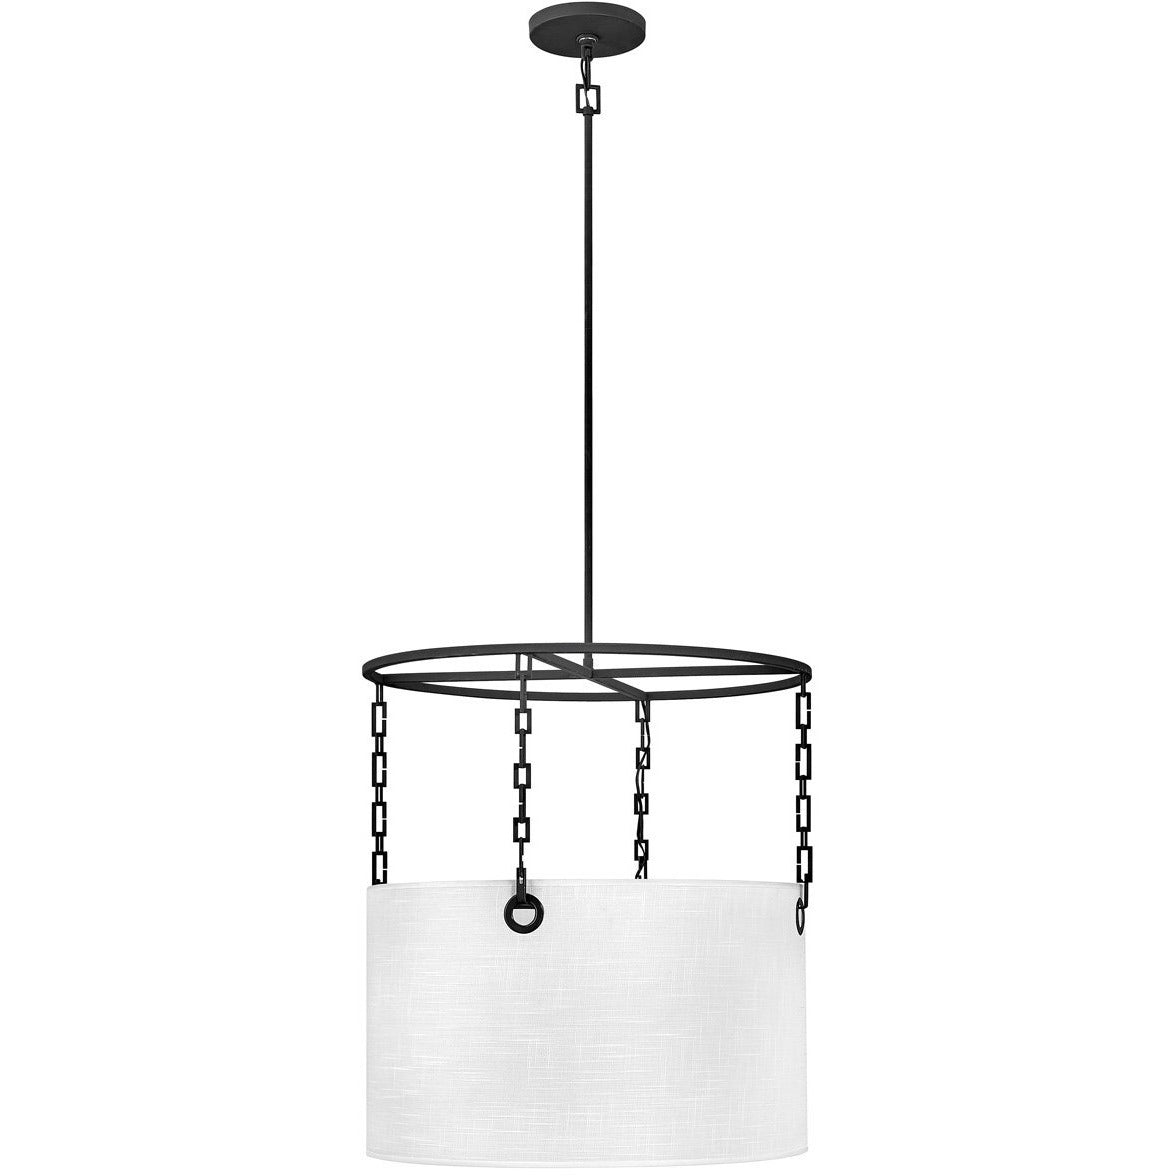 Hinkley Canada - 38404BLK - Four Light Chandelier - Tribeca - Black